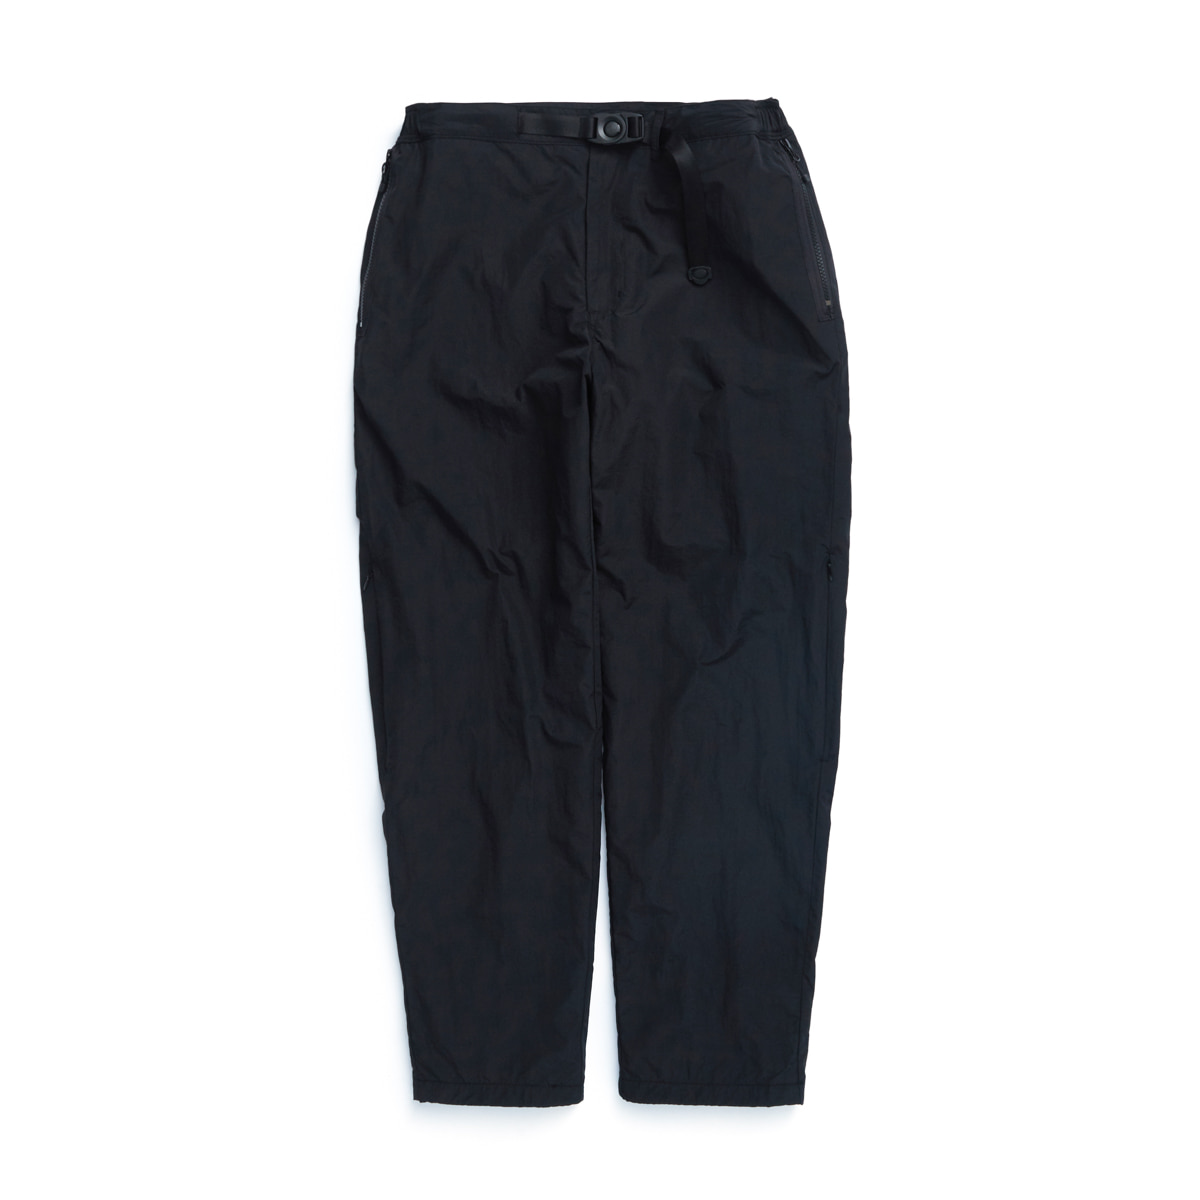 언어펙티드 FUNCTIONAL PANTS_Black